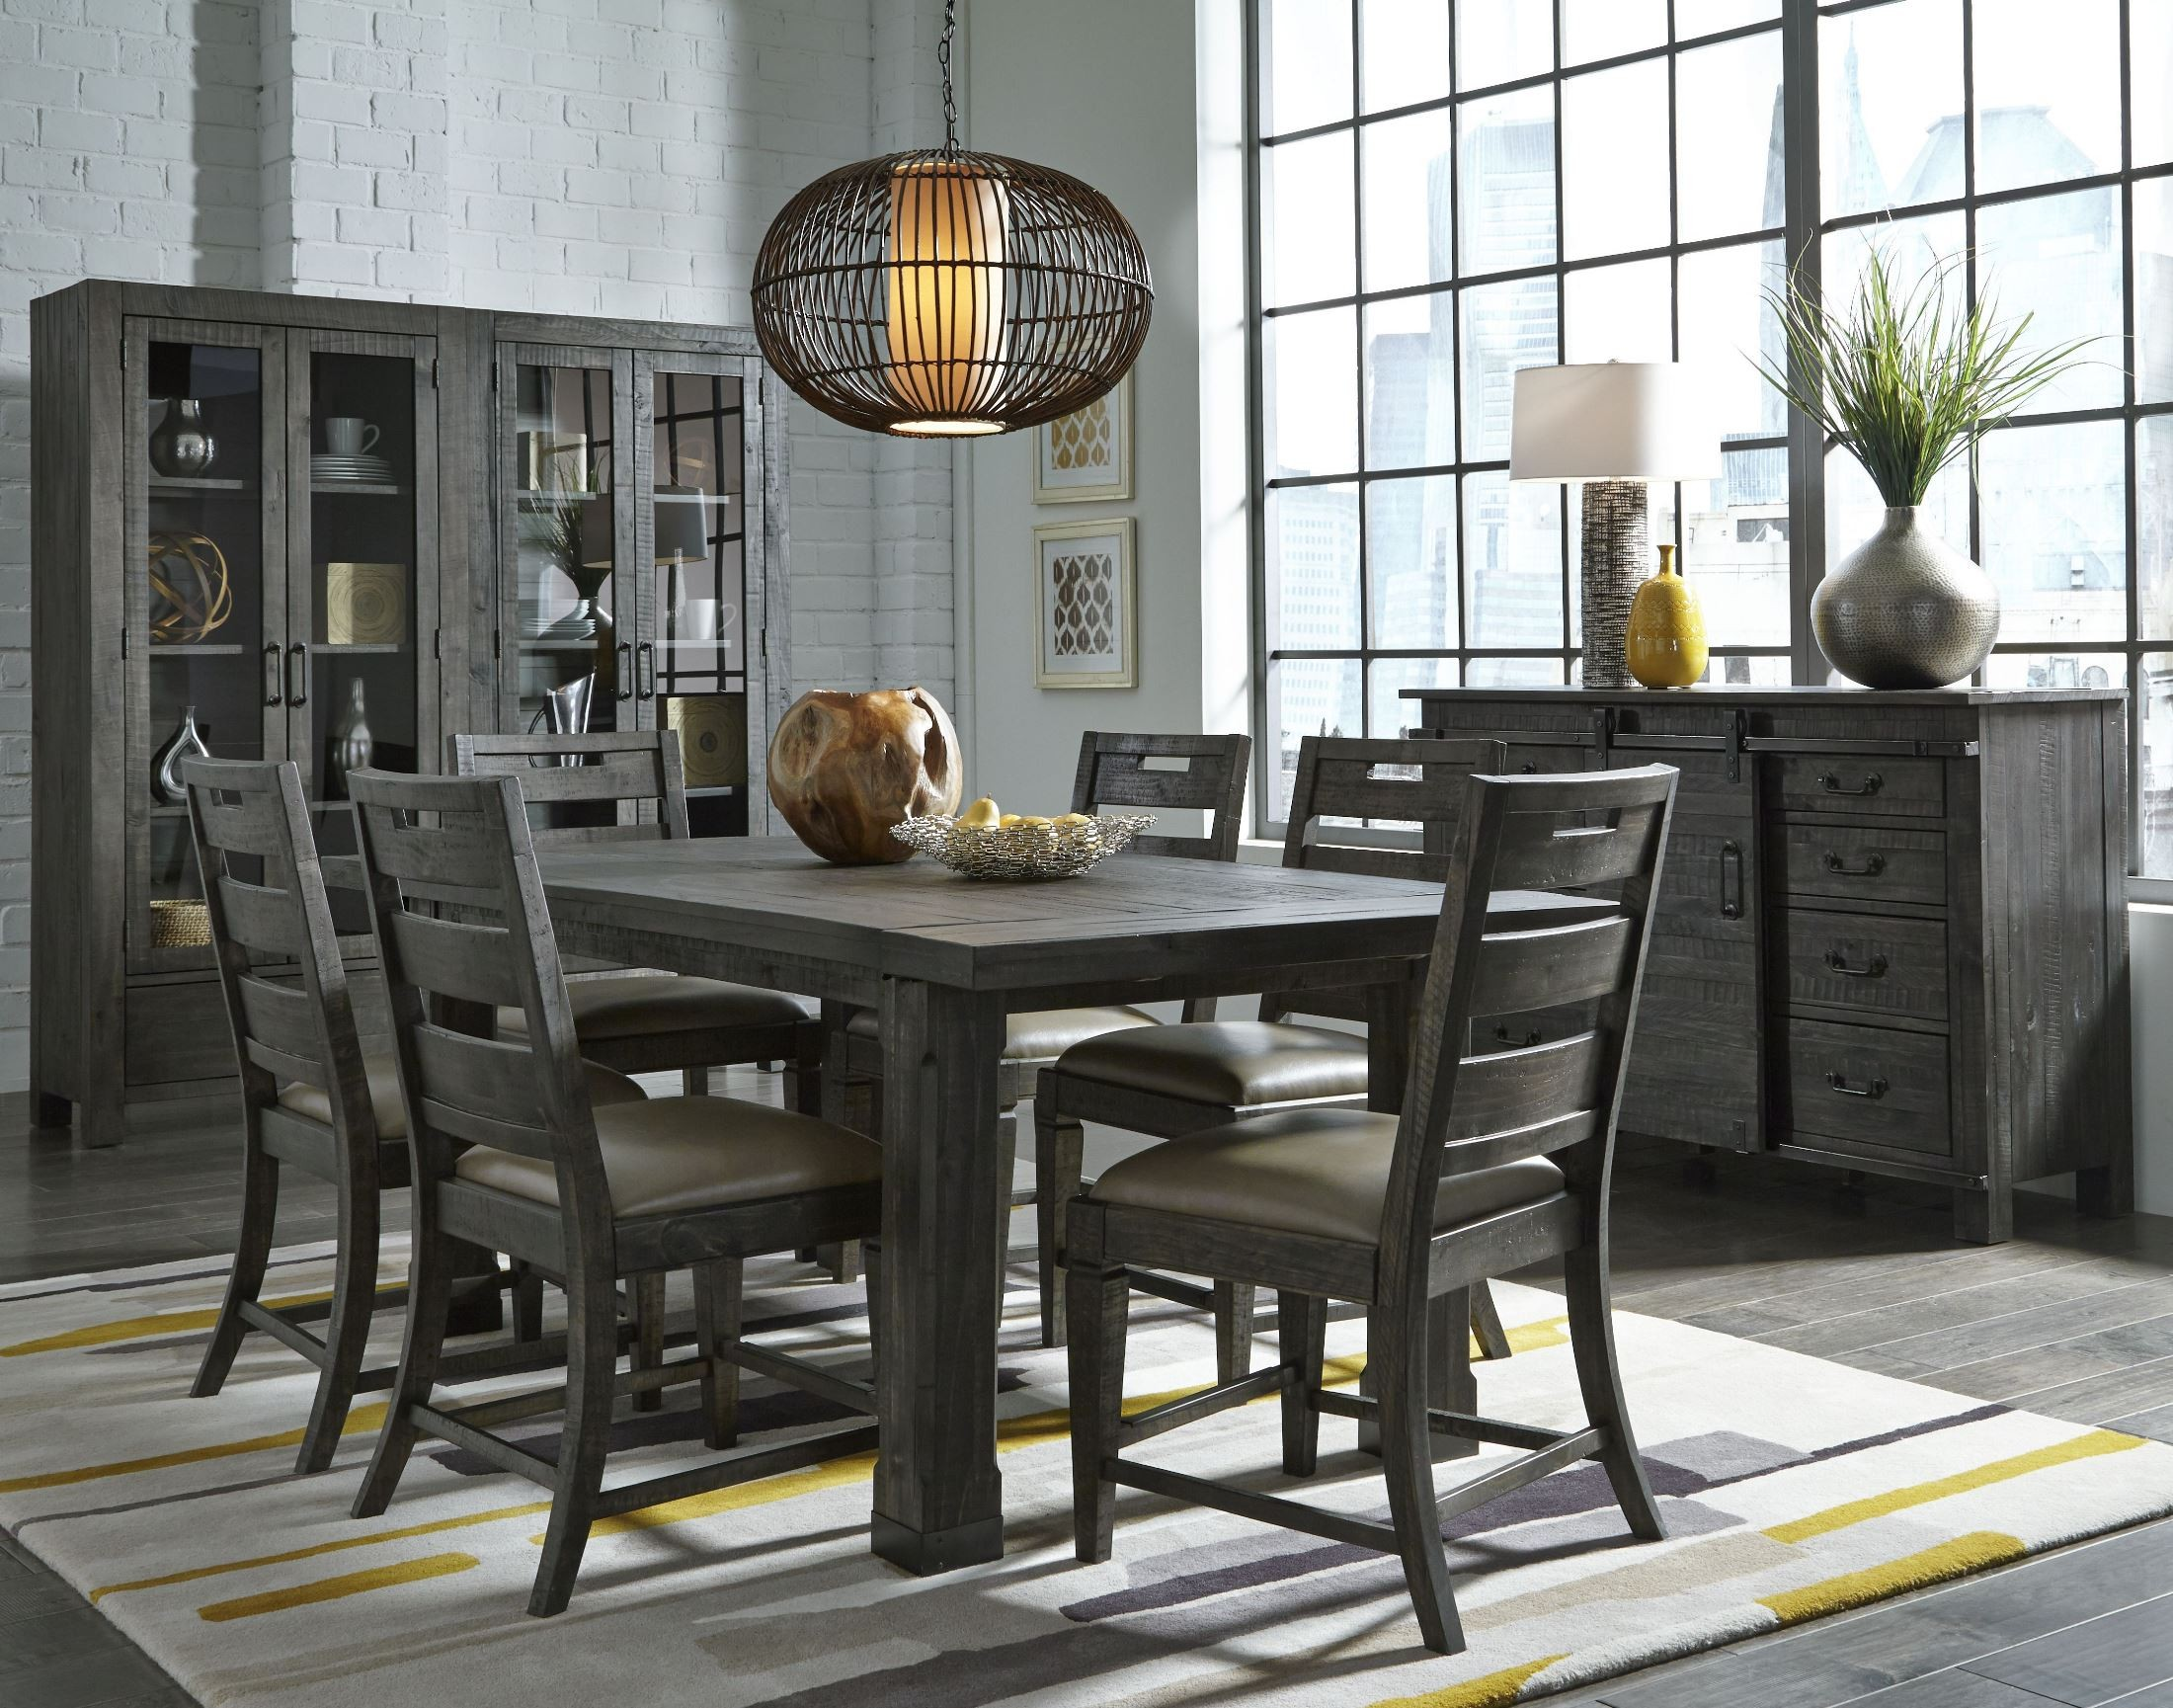 HD wallpapers dining room sets for sale by owner